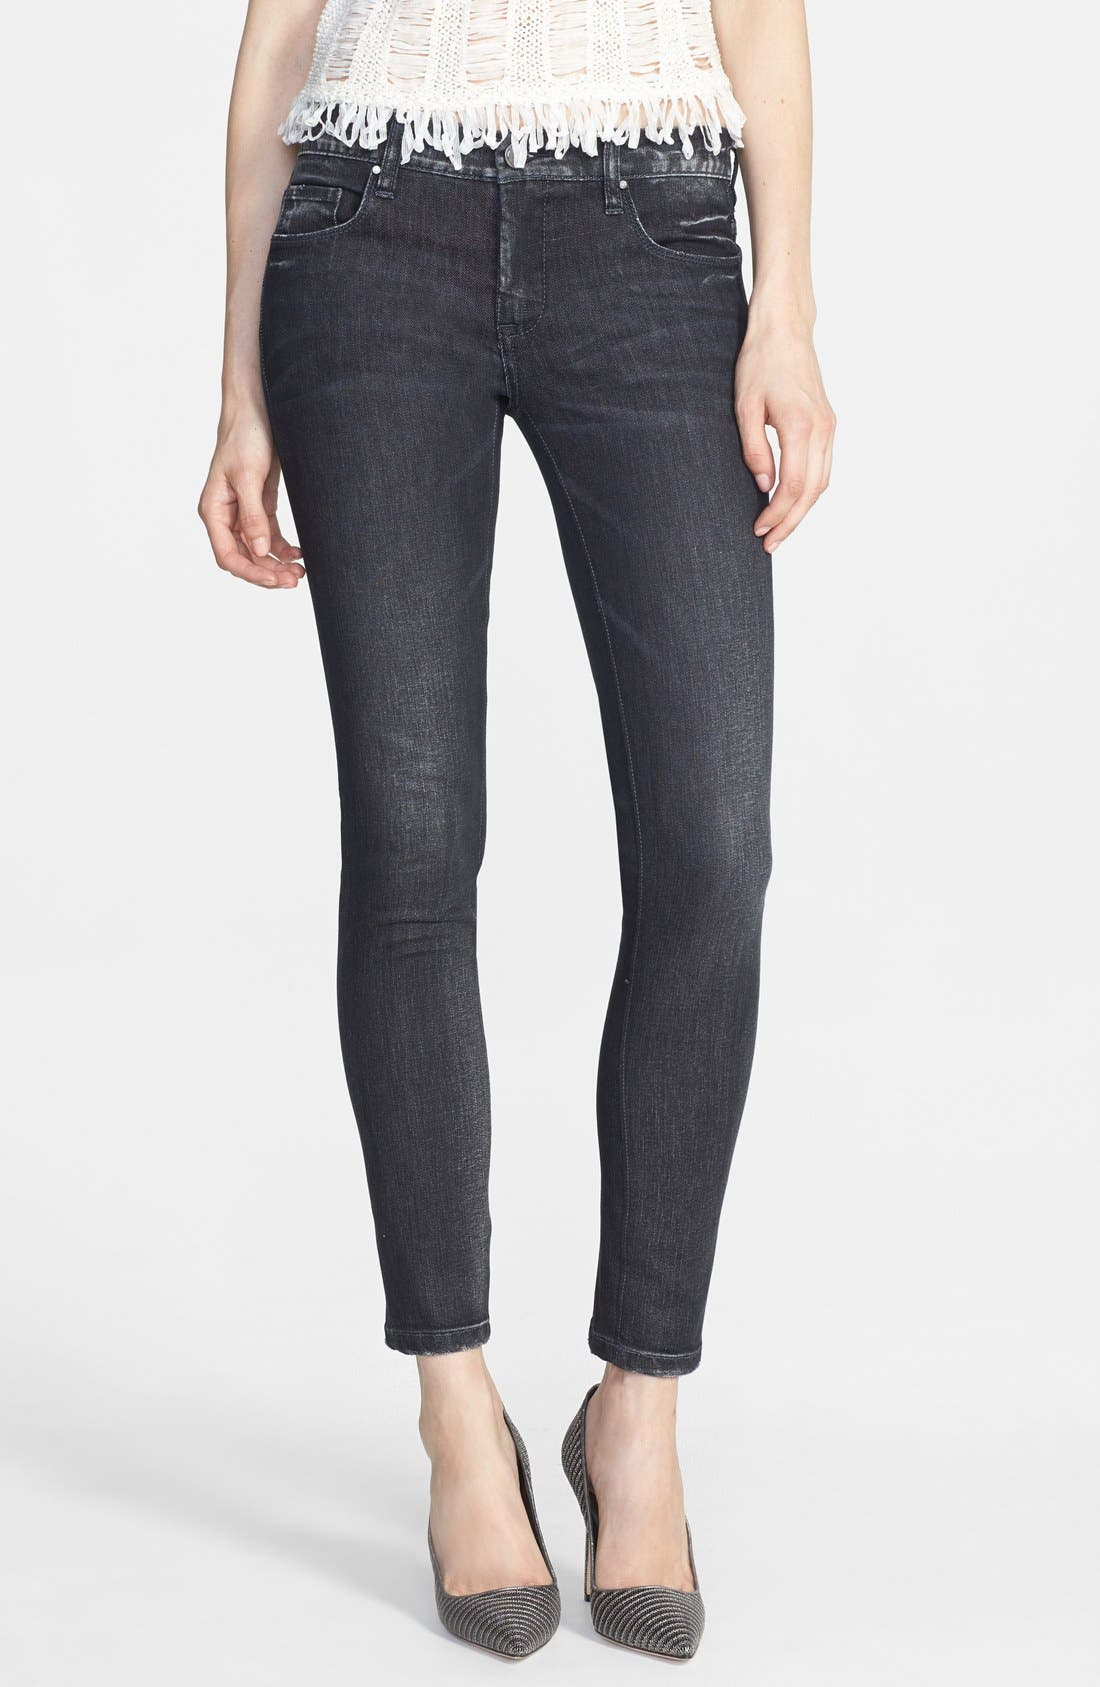 Alternate Image 1 Selected - BLANKNYC Skinny Jeans (Grey Area Anatomy)